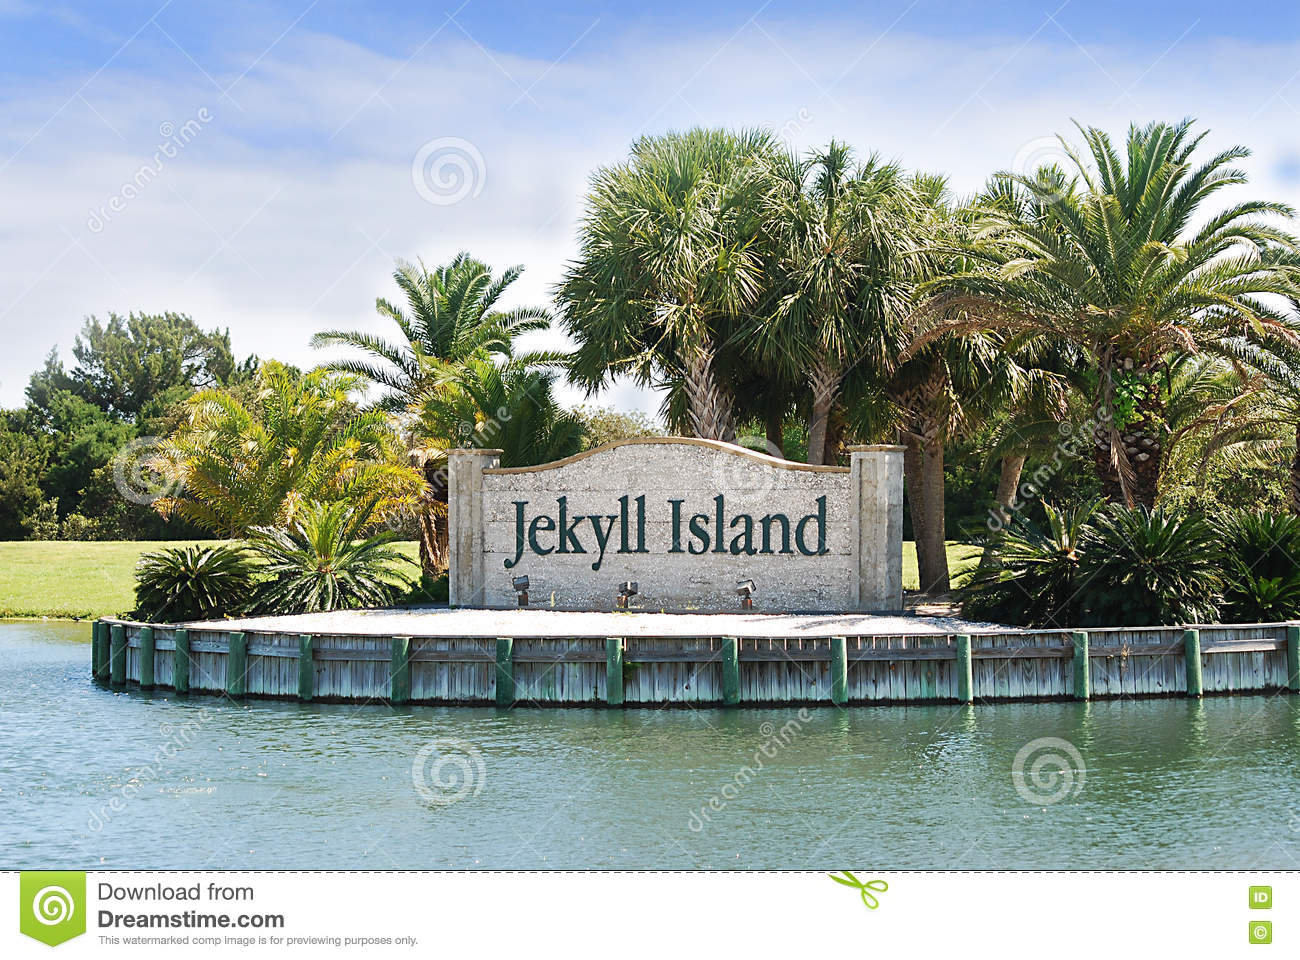 The Landmark Entrance Sign To Jekyll Island, Georgia. Stock Photo.